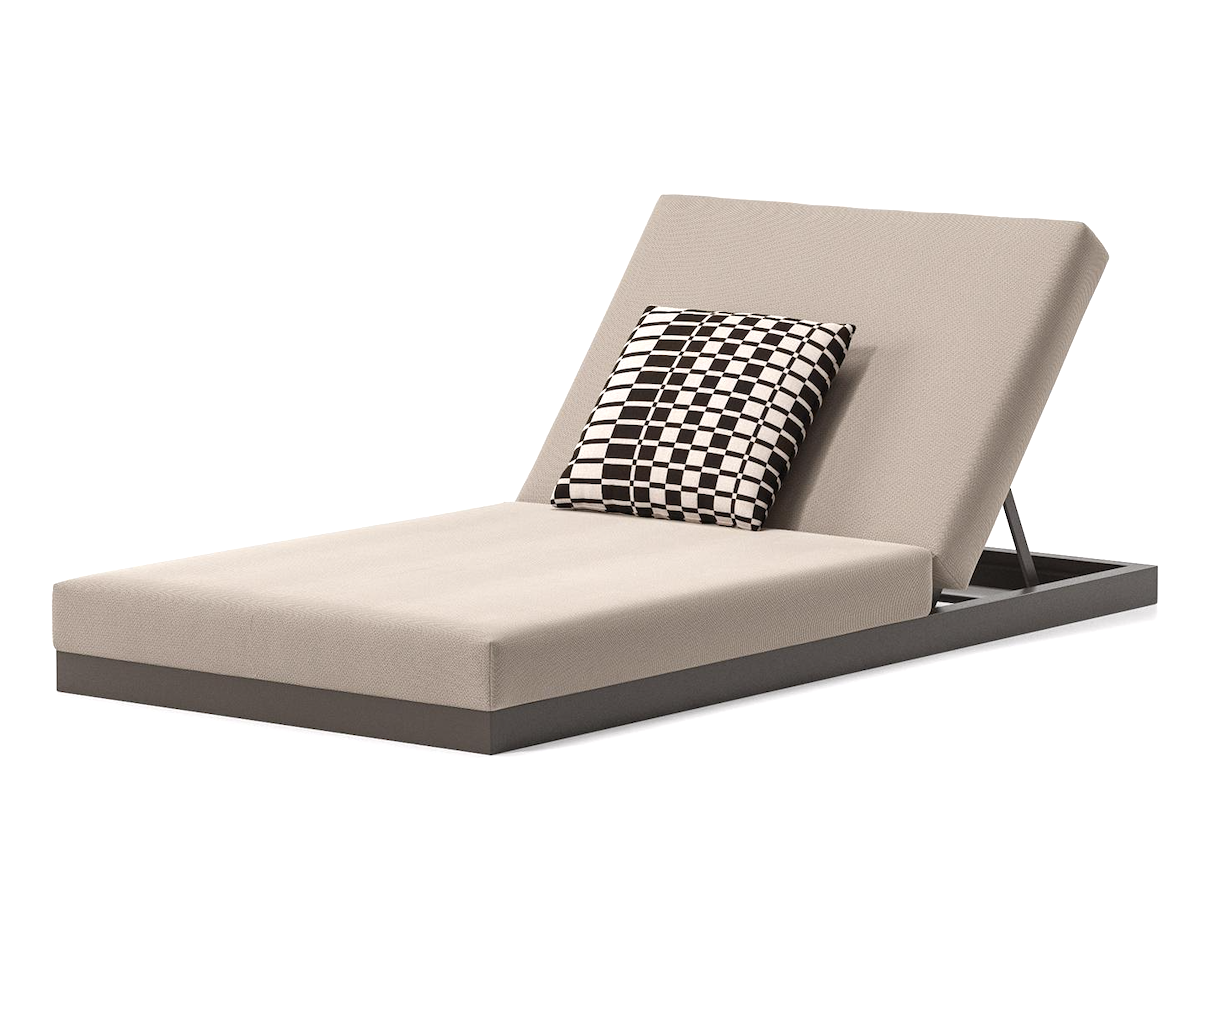 Product Image Landscape sunlounger without legs